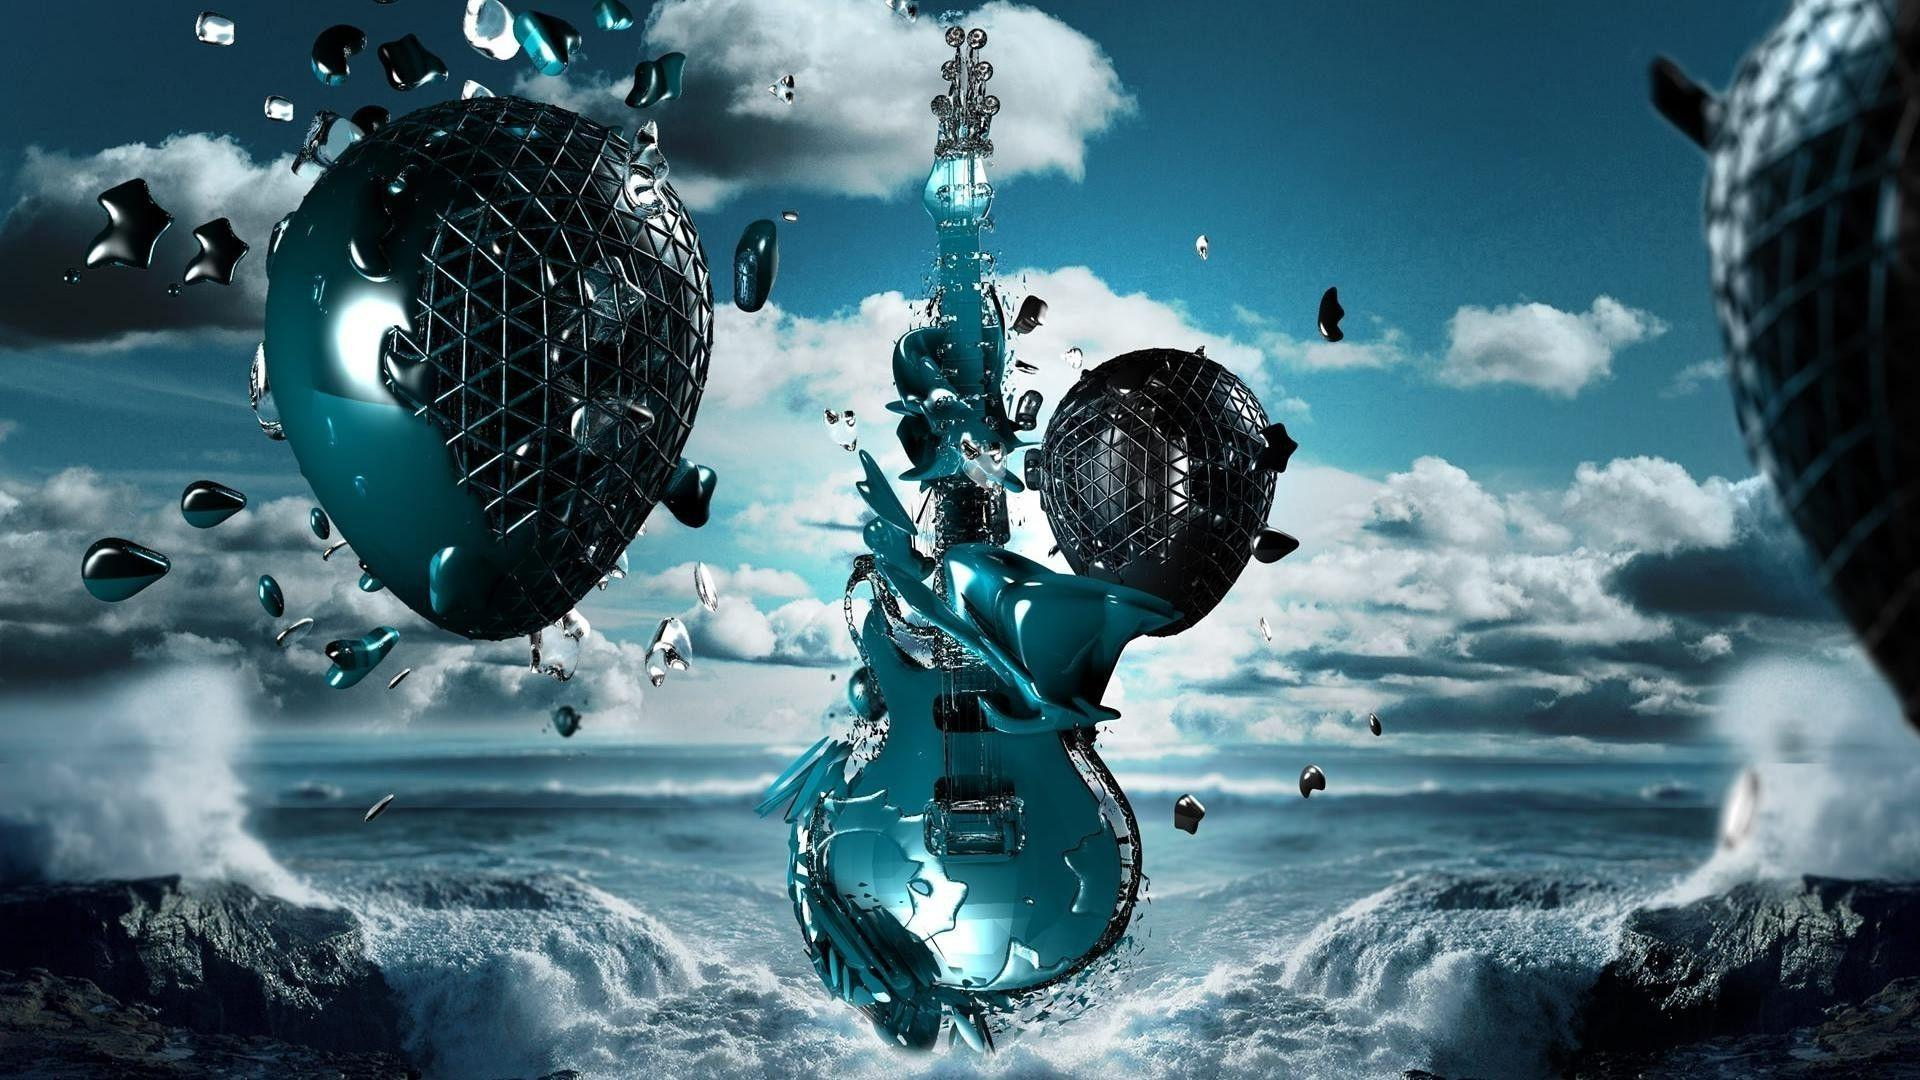 Stylized electric guitar Wallpapers #